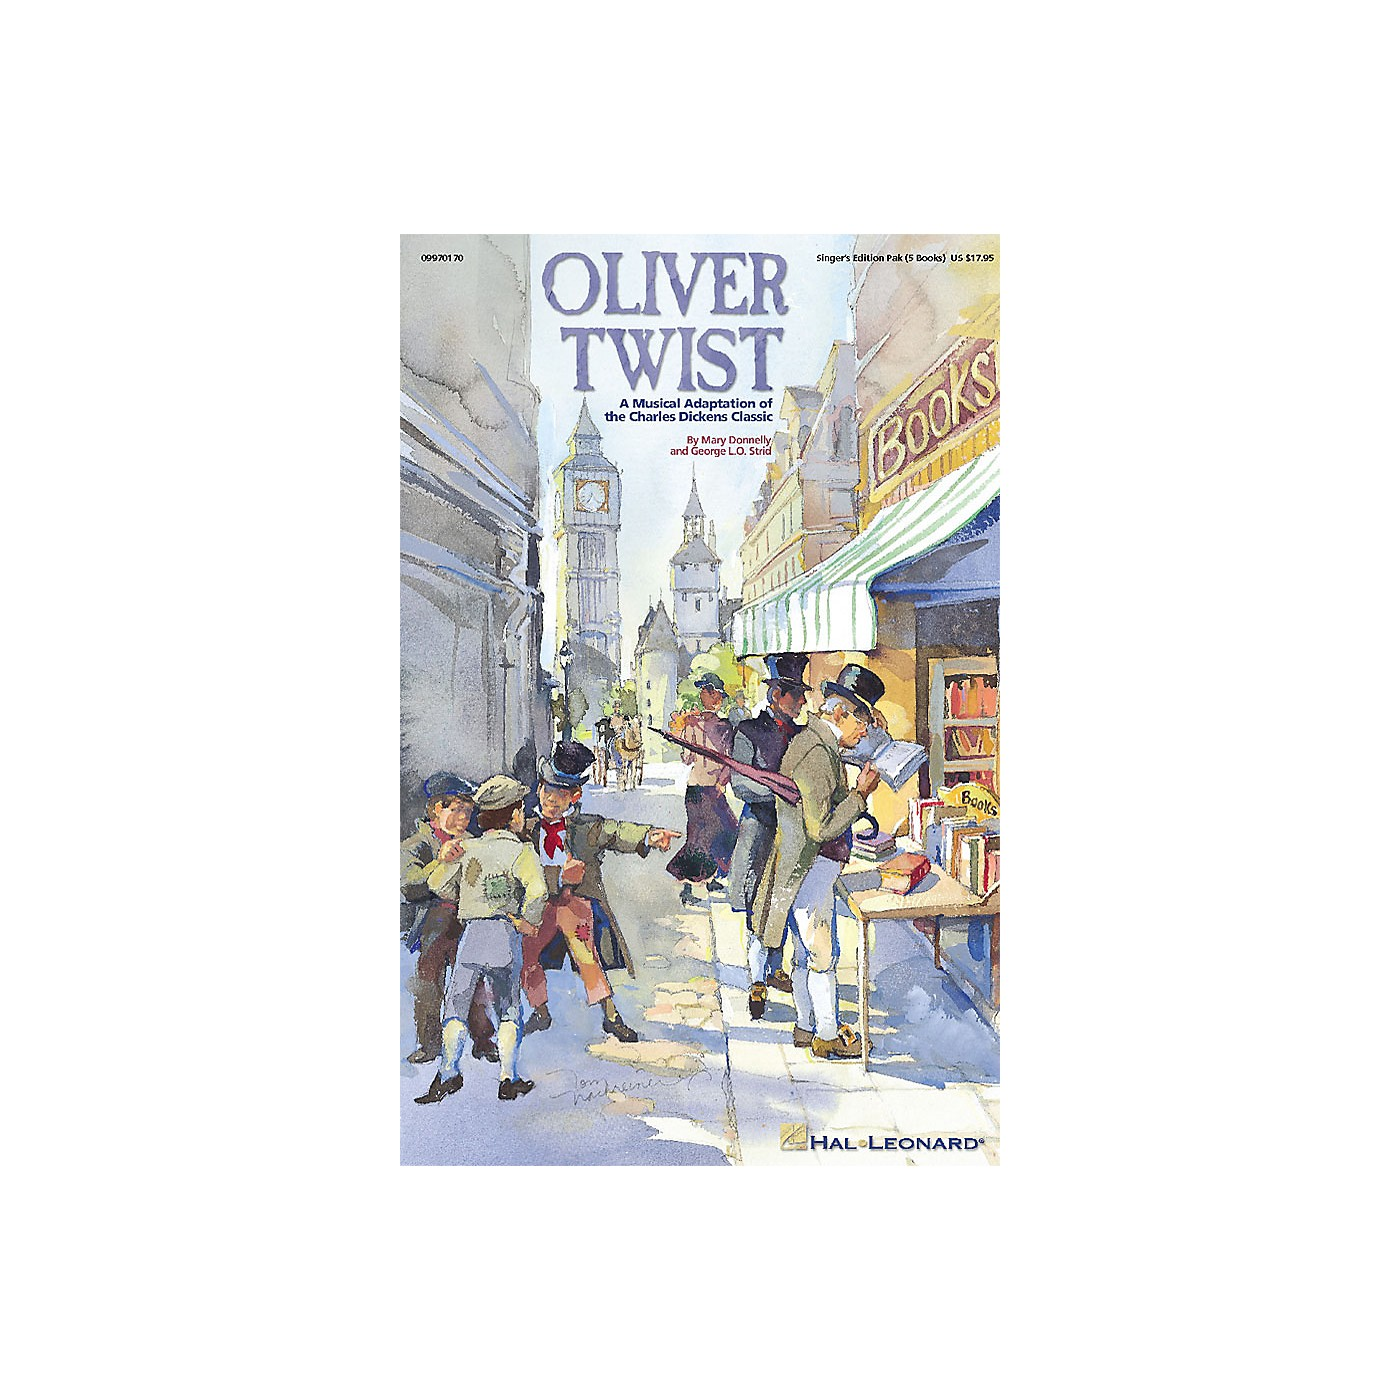 Hal Leonard Oliver Twist - A Musical Adaptation of the Charles Dickens Classic (Musical) Sgr 5 Pak by Mary Donnelly thumbnail